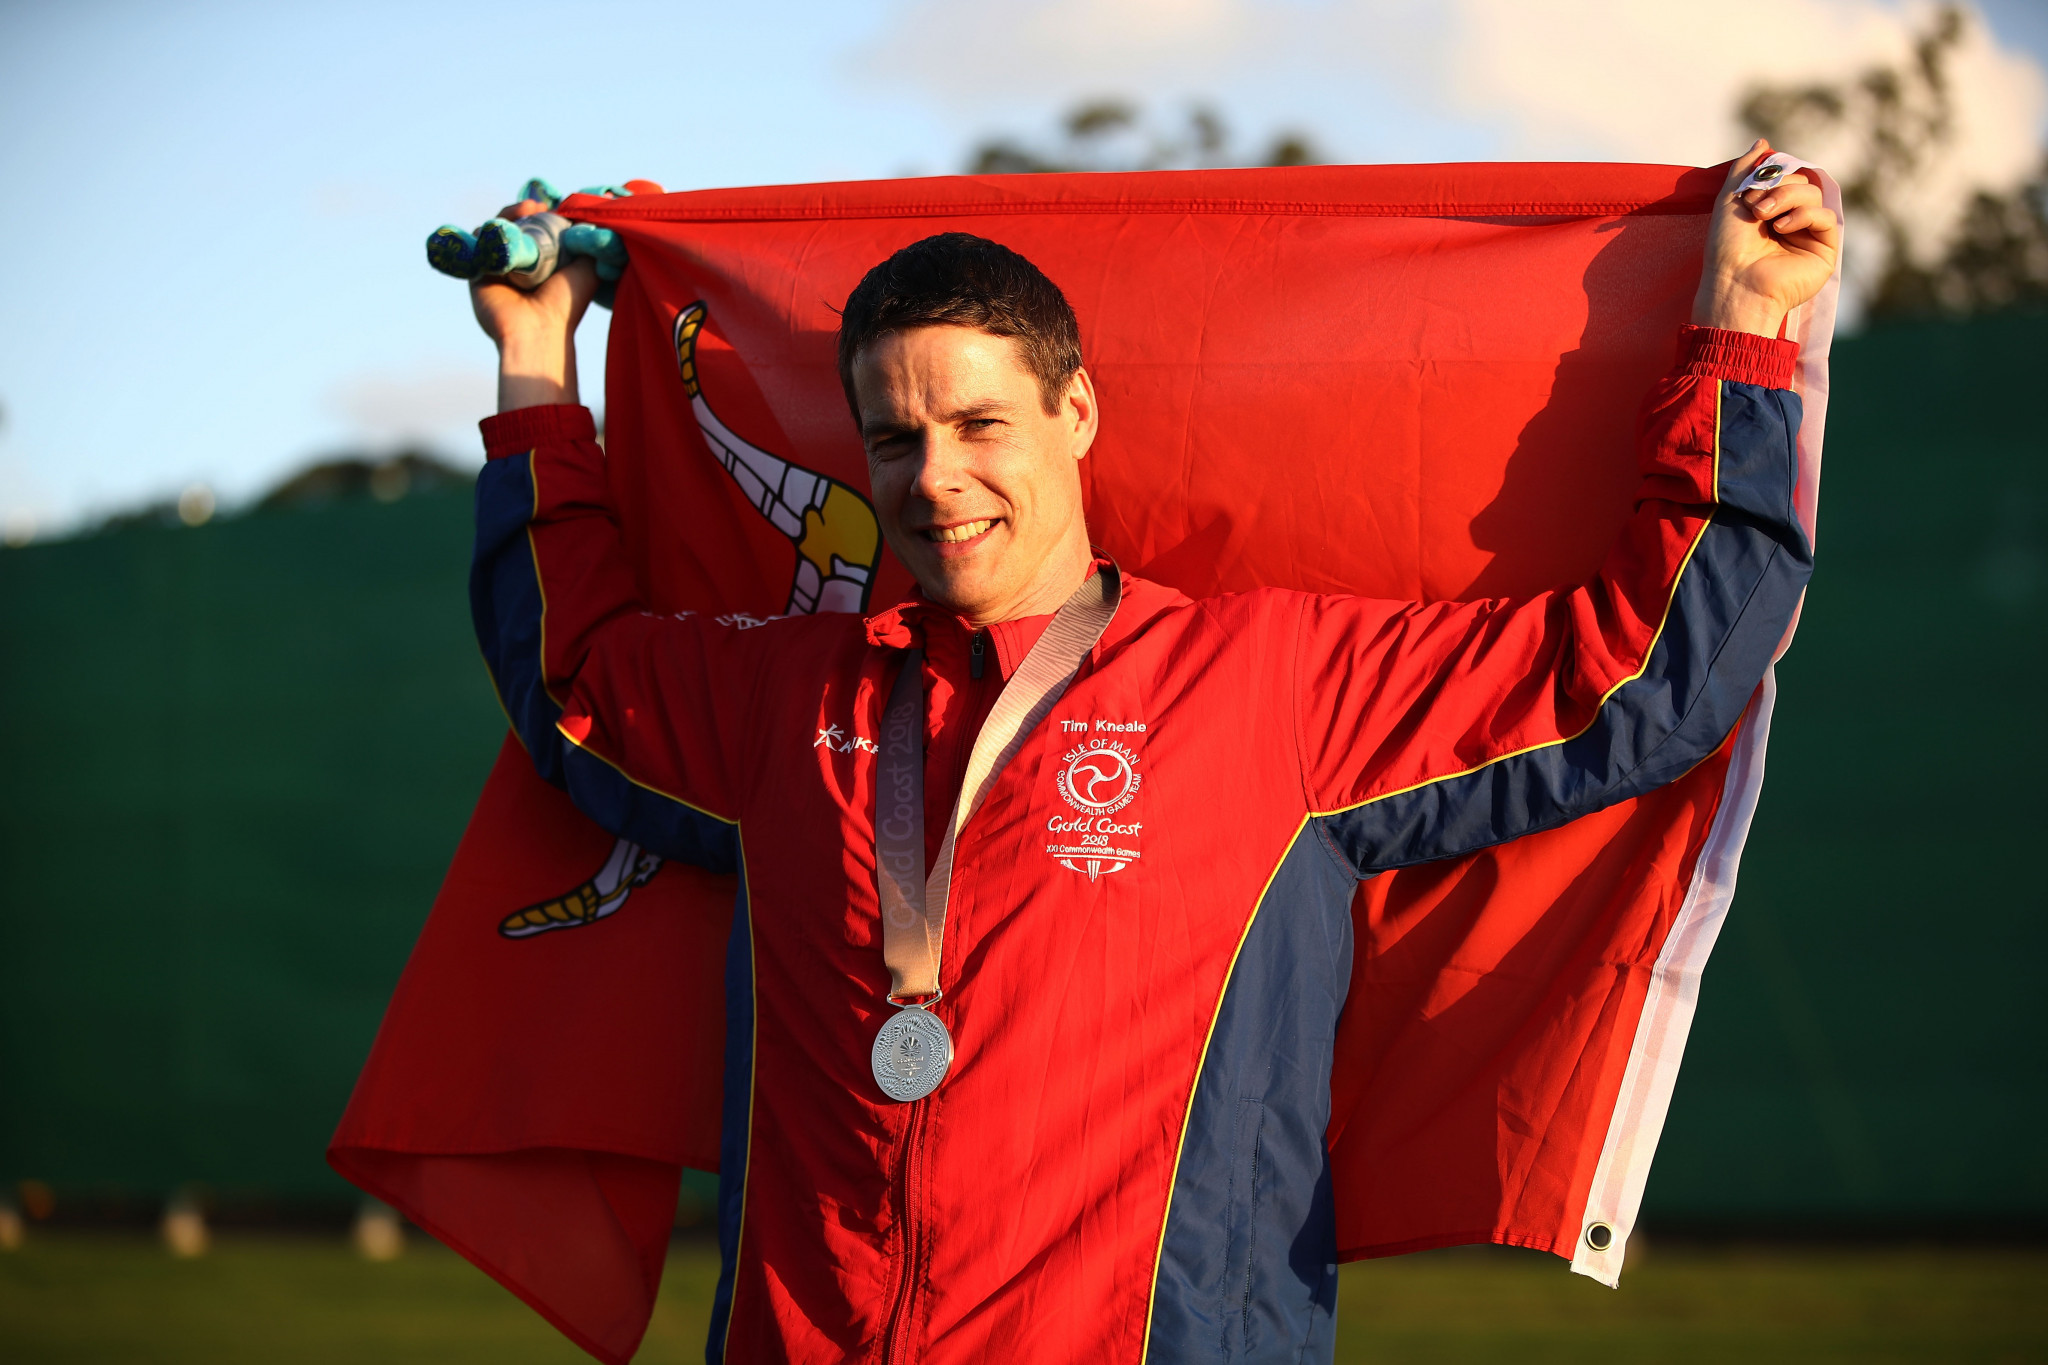 Commonwealth Games silver medallist honoured at Isle of Man sports awards